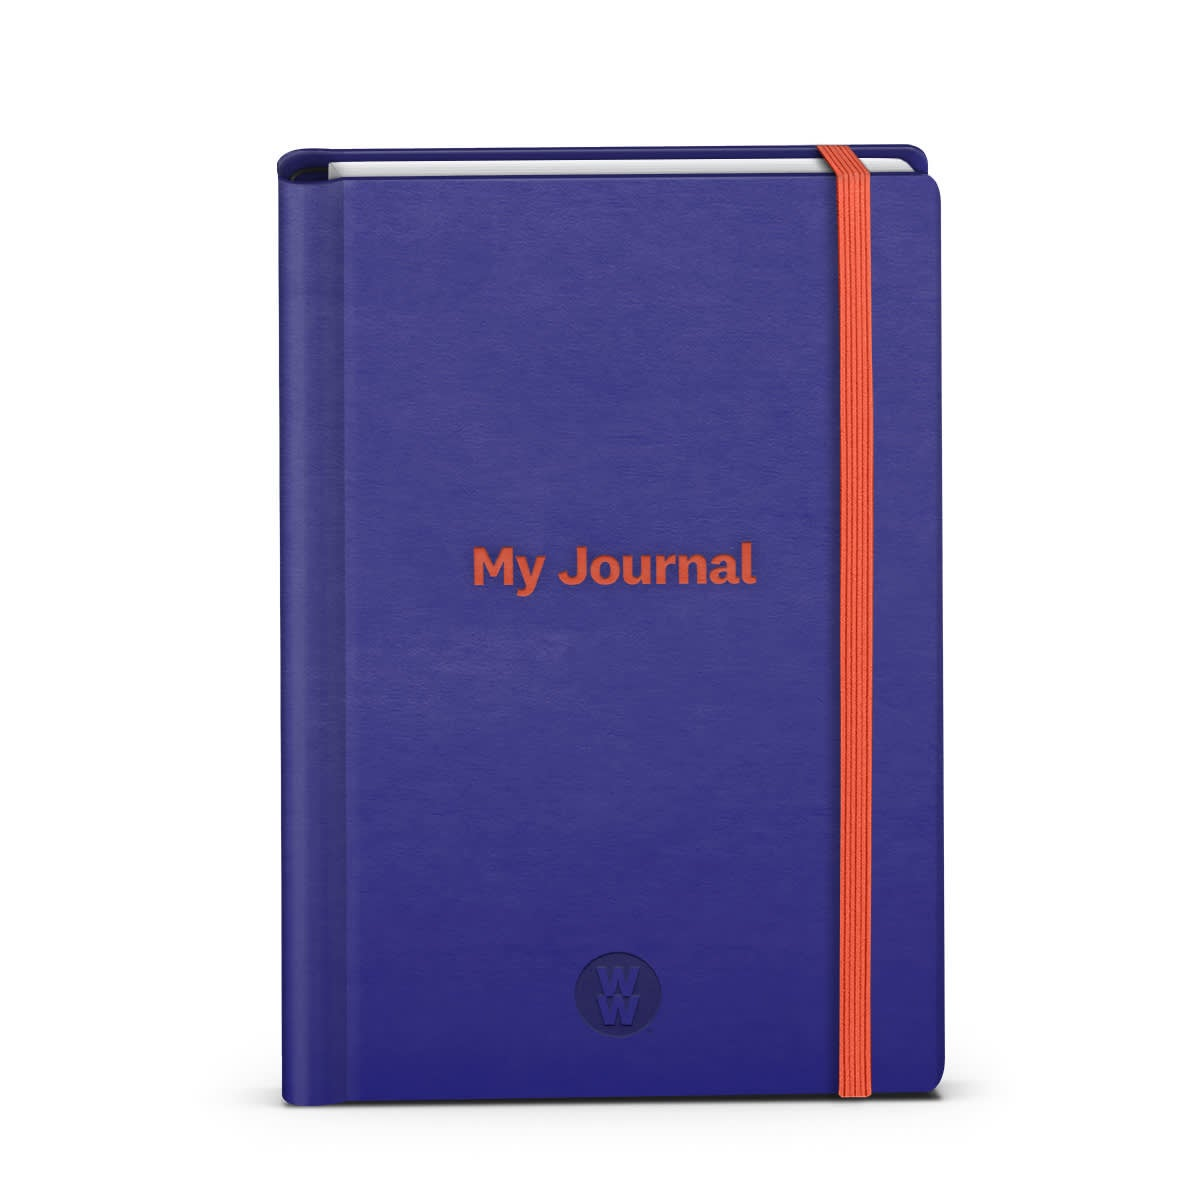 My Journal 7061008 - English Edition - Front